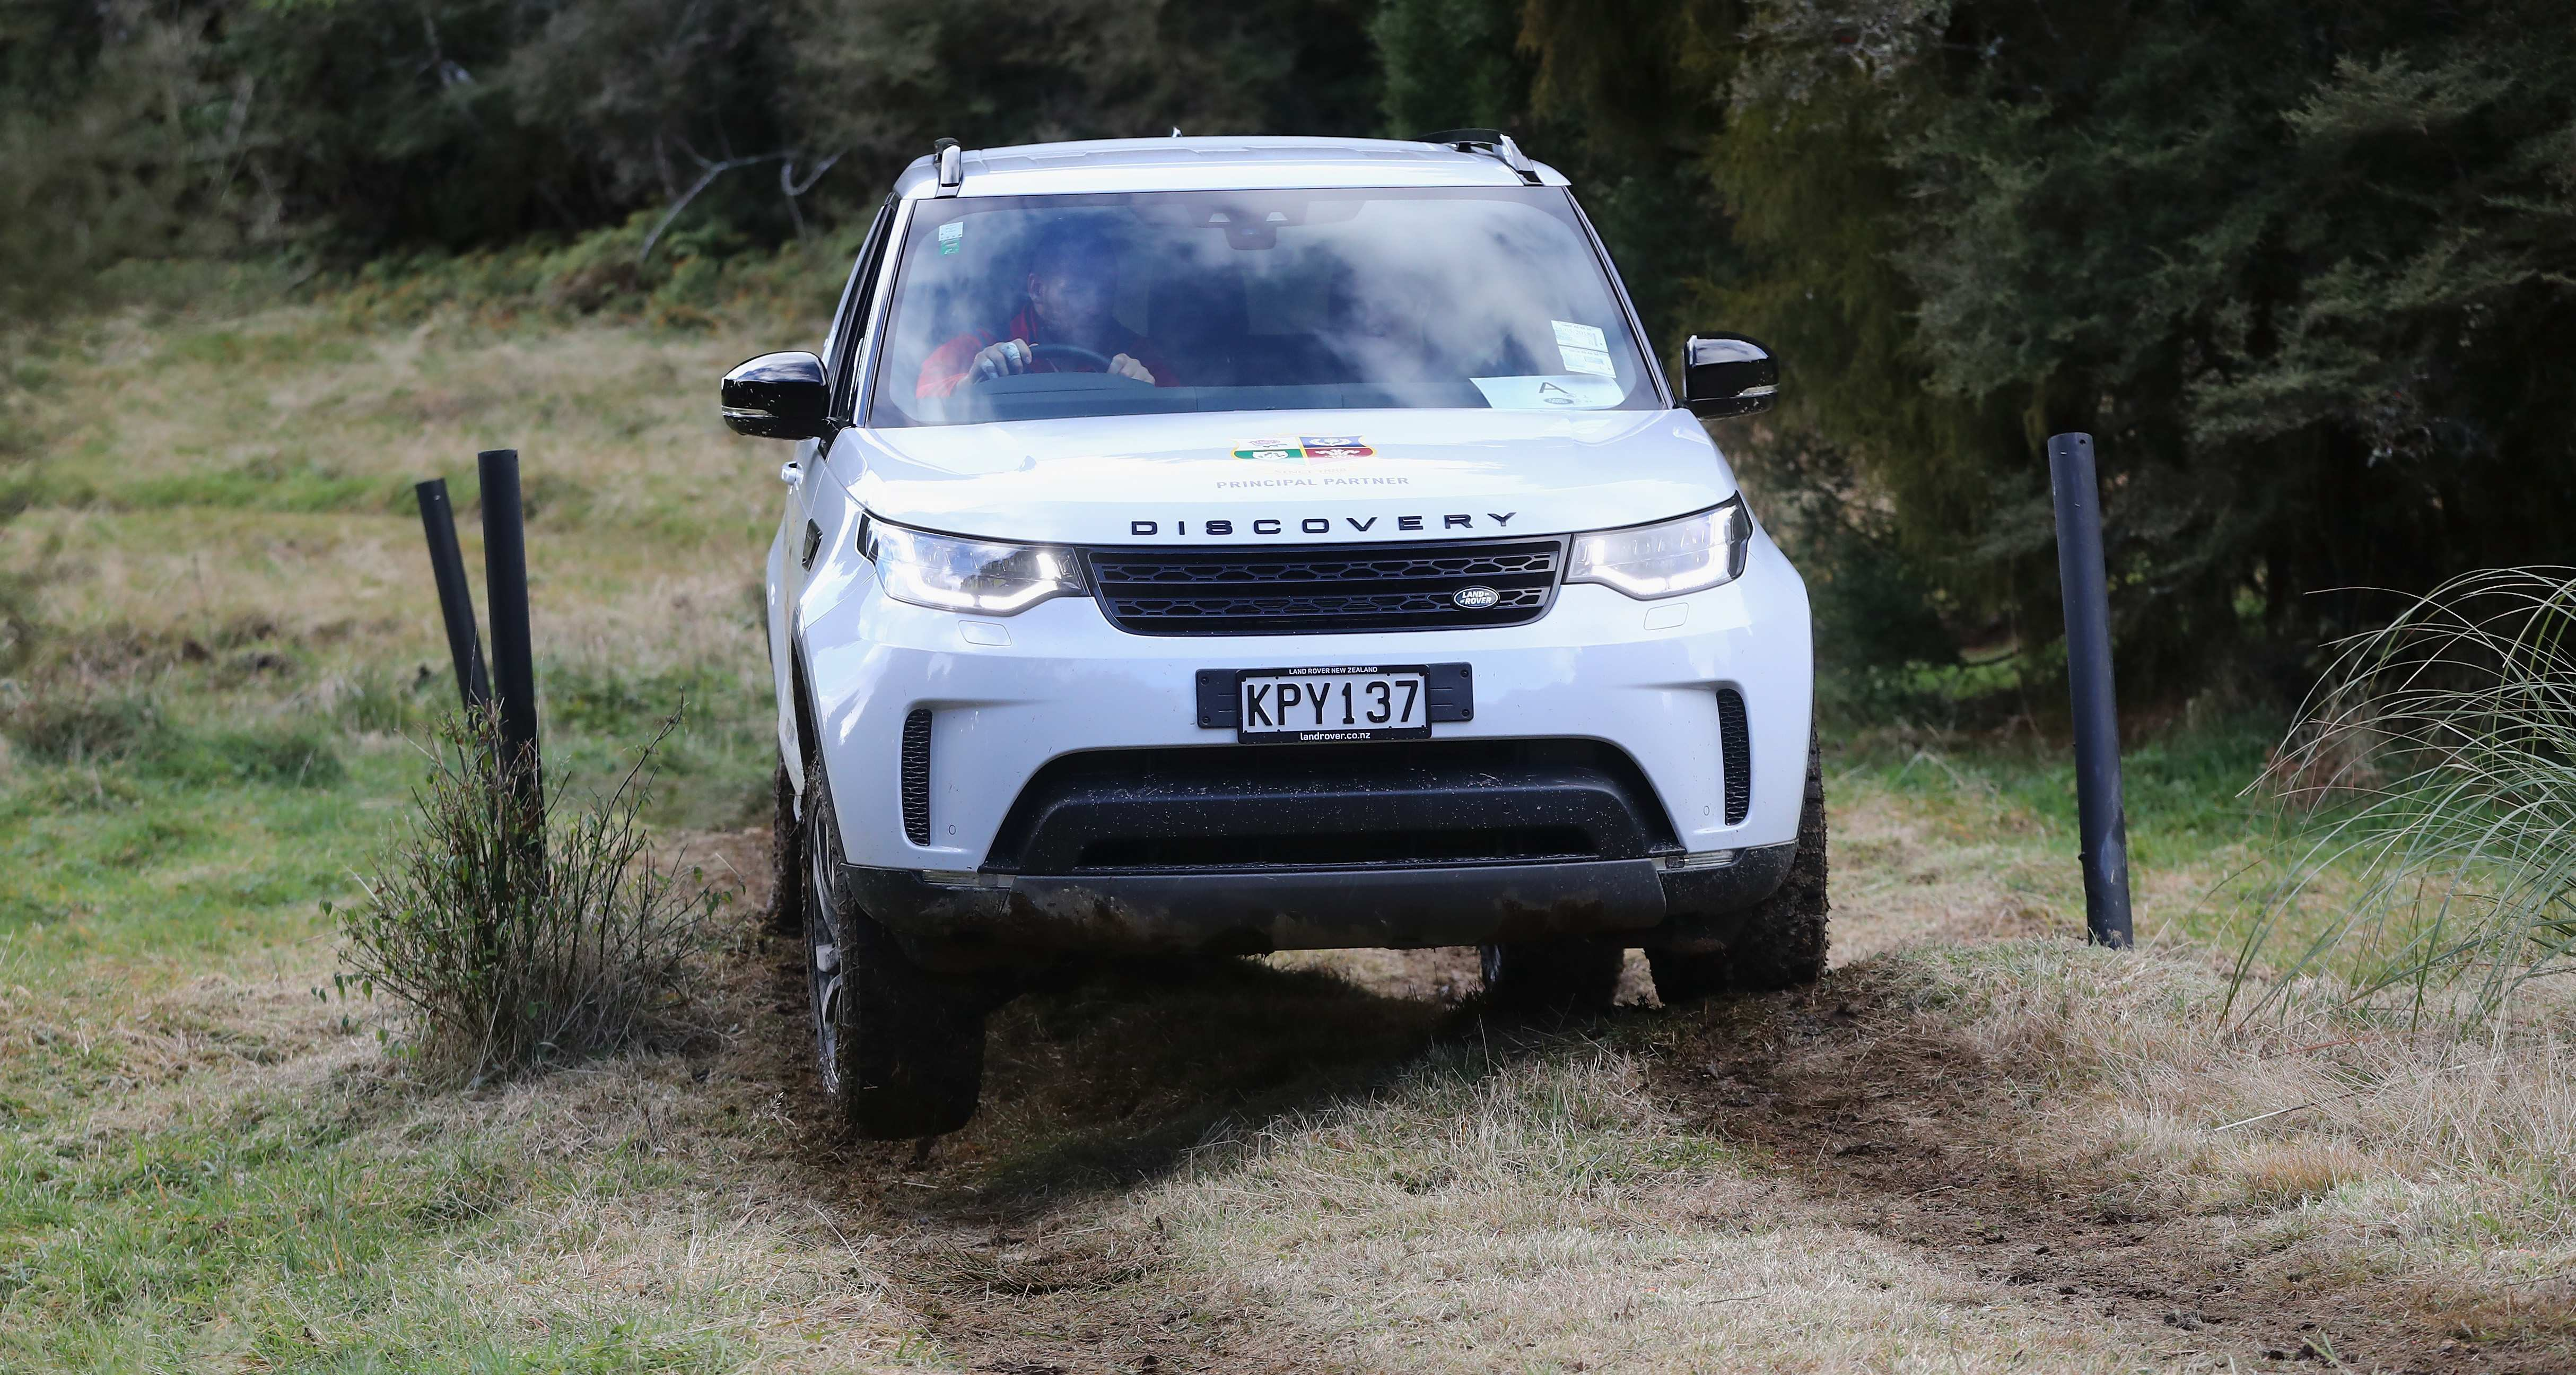 87 Best Review Land Rover Electric 2020 Specs for Land Rover Electric 2020